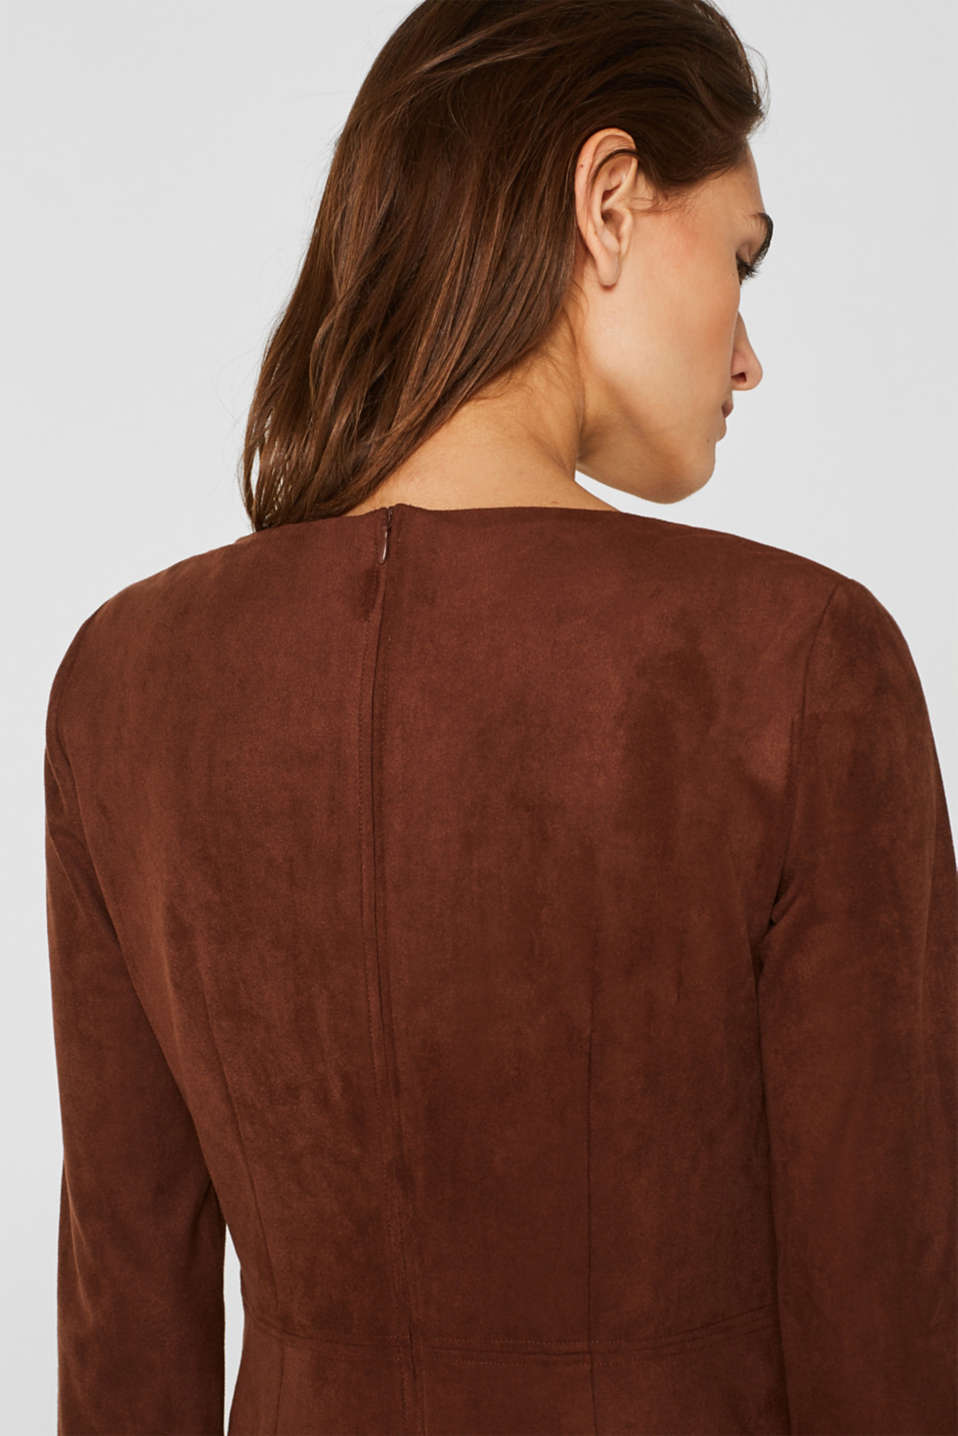 Stretch faux leather dress, DARK BROWN, detail image number 2